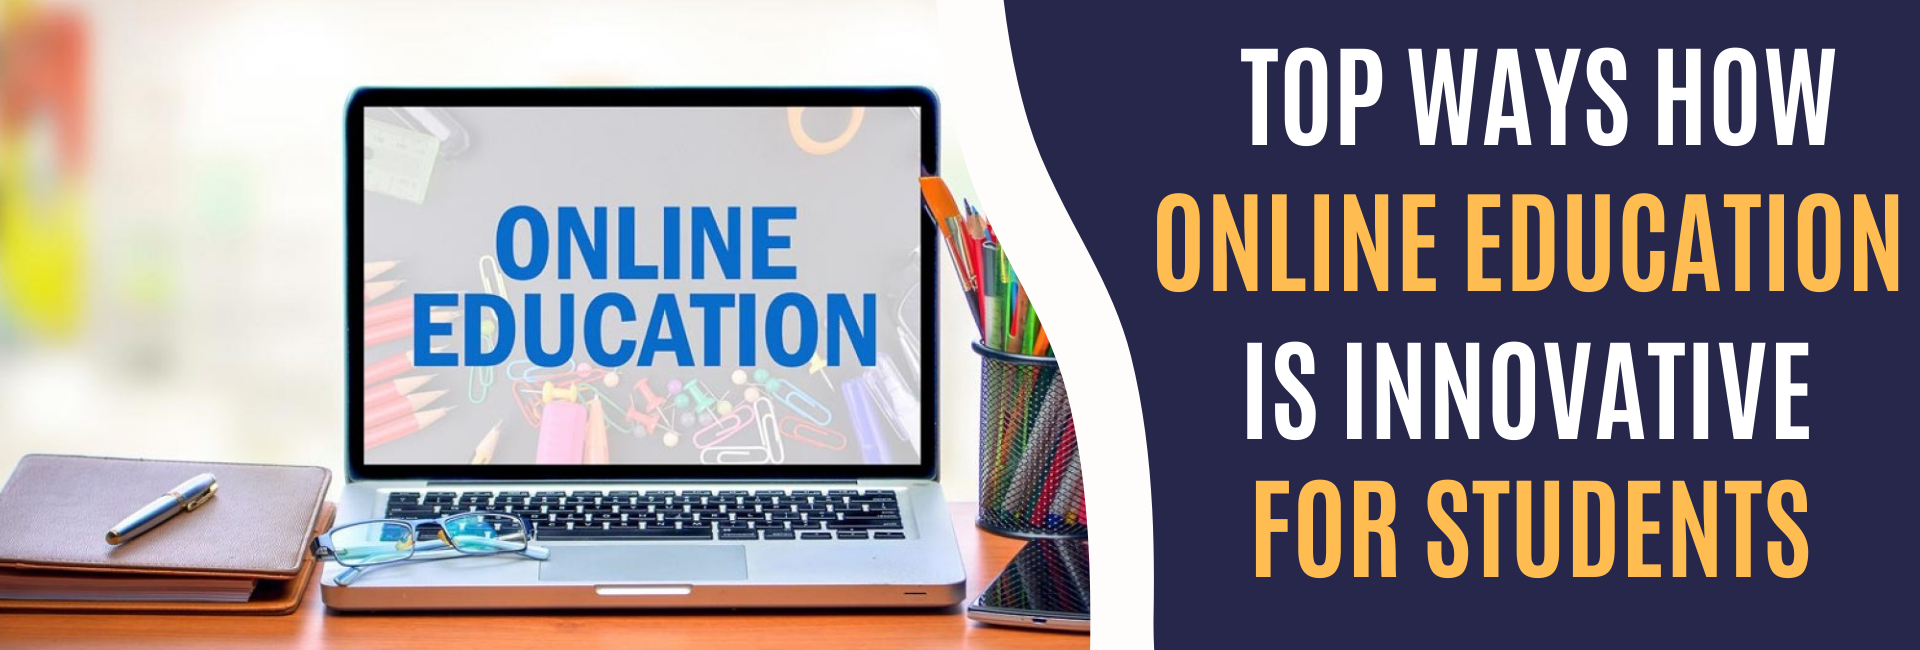 Top ways how online education is innovative for students-featured image